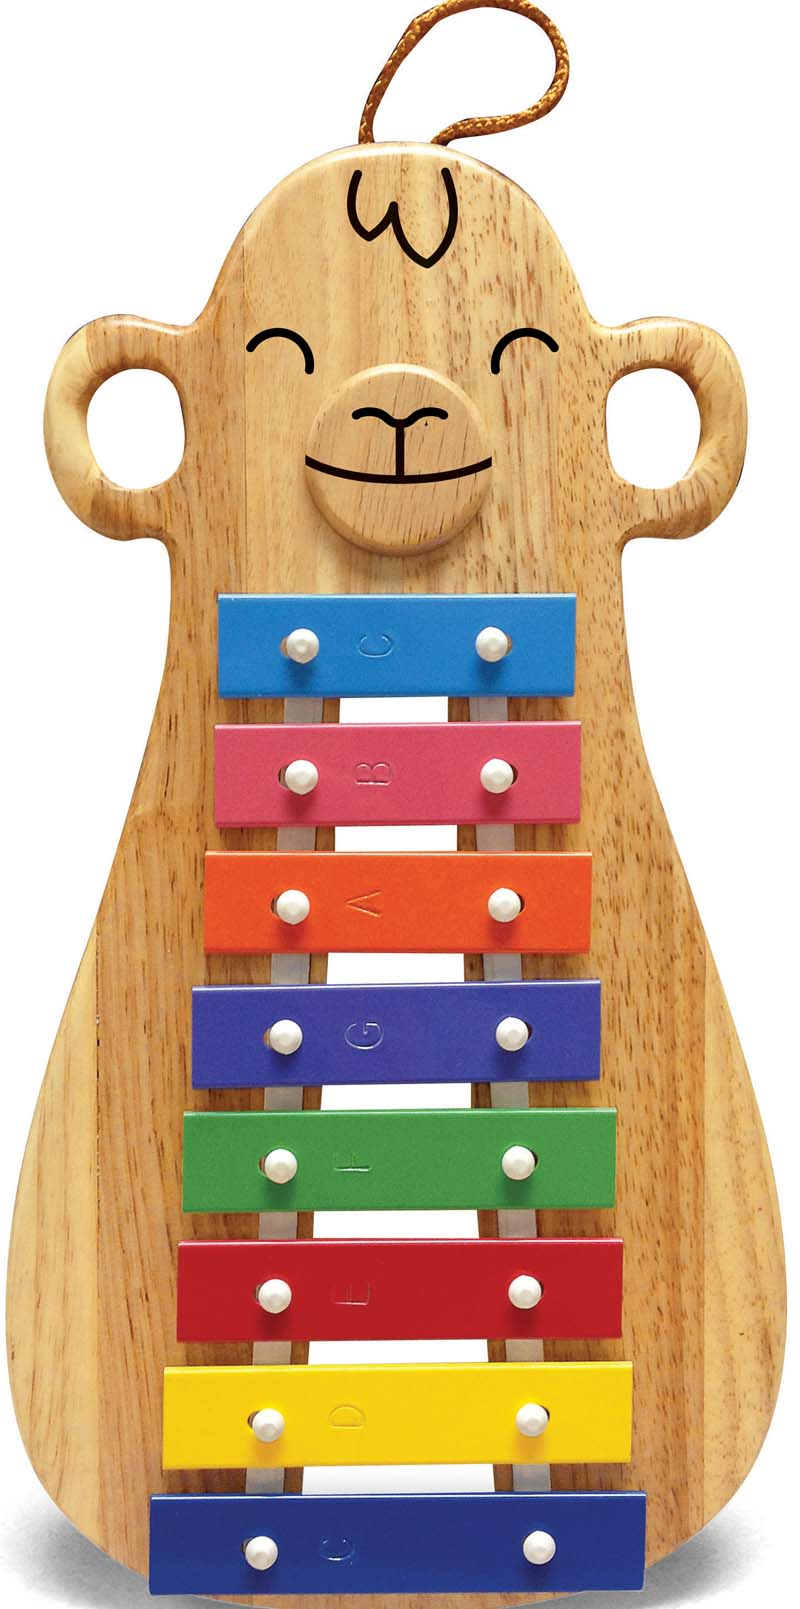 KHS America Recalls Children's Musical Instrument Due to Violation of Lead Paint Standard